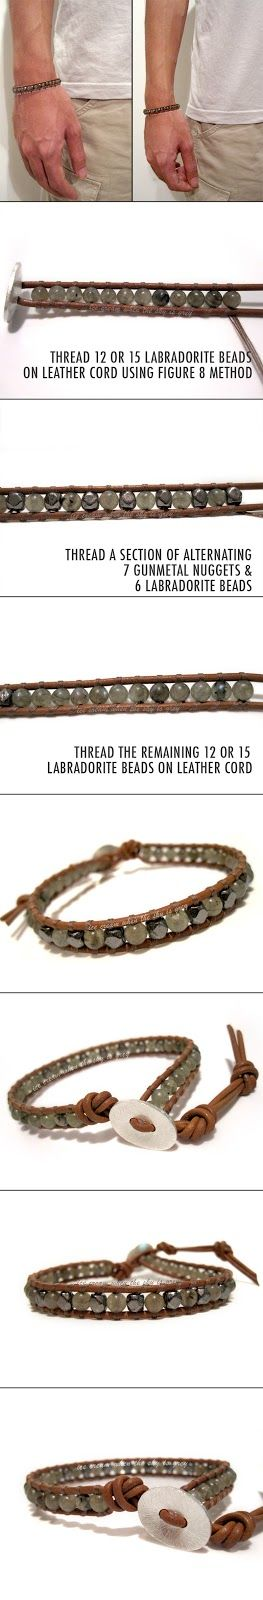 ice cream when the sky is grey: DIY Bracelet: Valentine's Gift Idea For Men - Single Wrap Gunmetal & Labradorite Mix On Natural Brown Leather